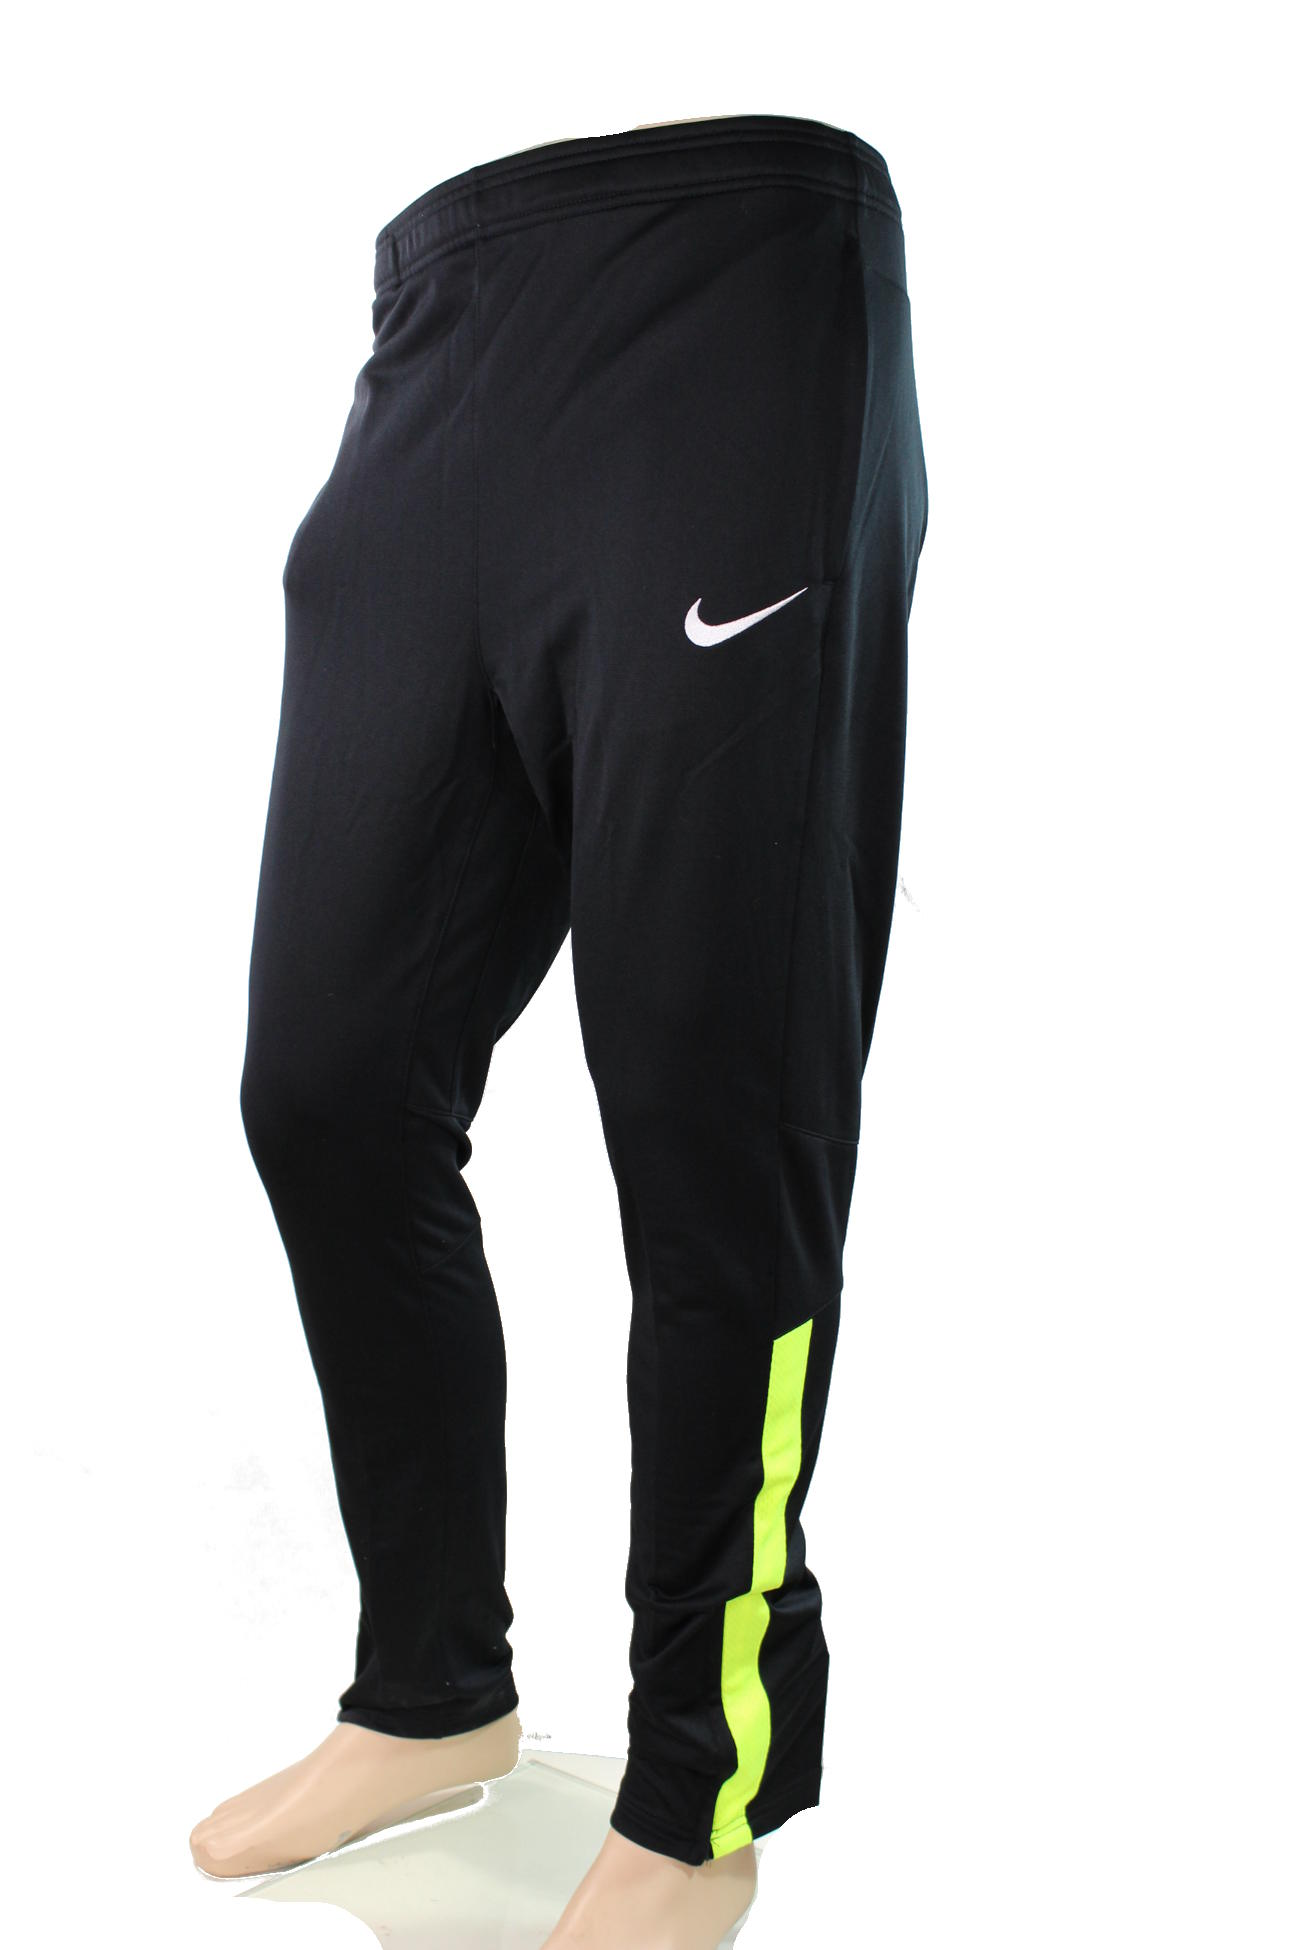 Squad Sideline Knit 2 Nike Pants Track Training Men ZIP POCKETS stretch 2015